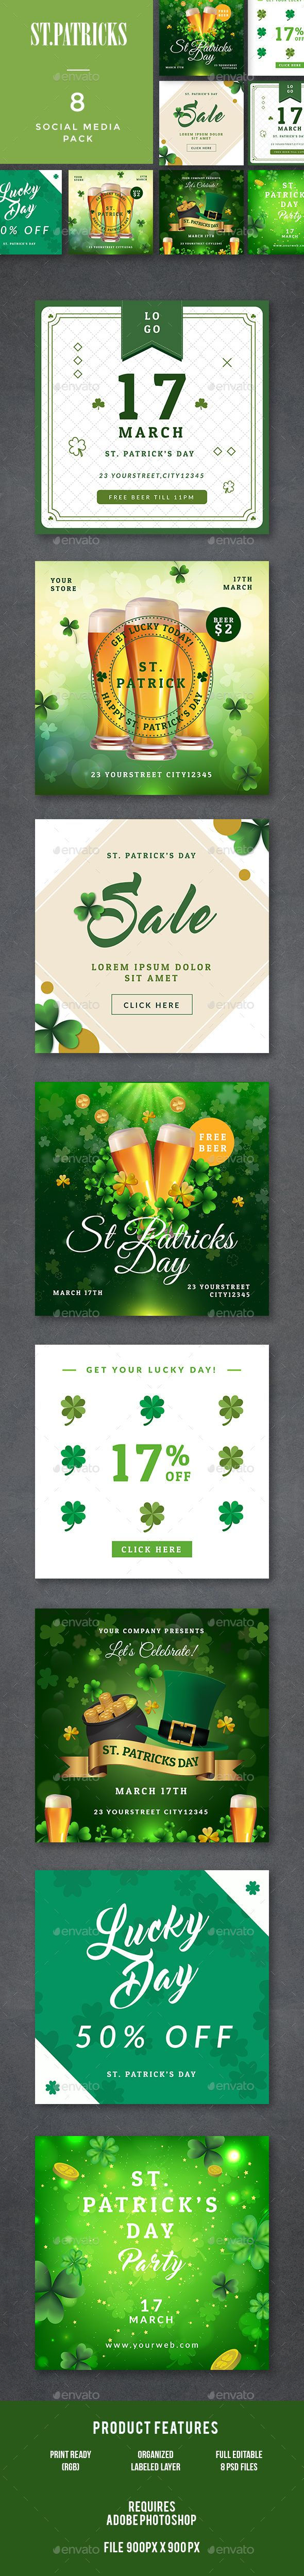 St. Patricks Day Banners Templates PSD 900x900px